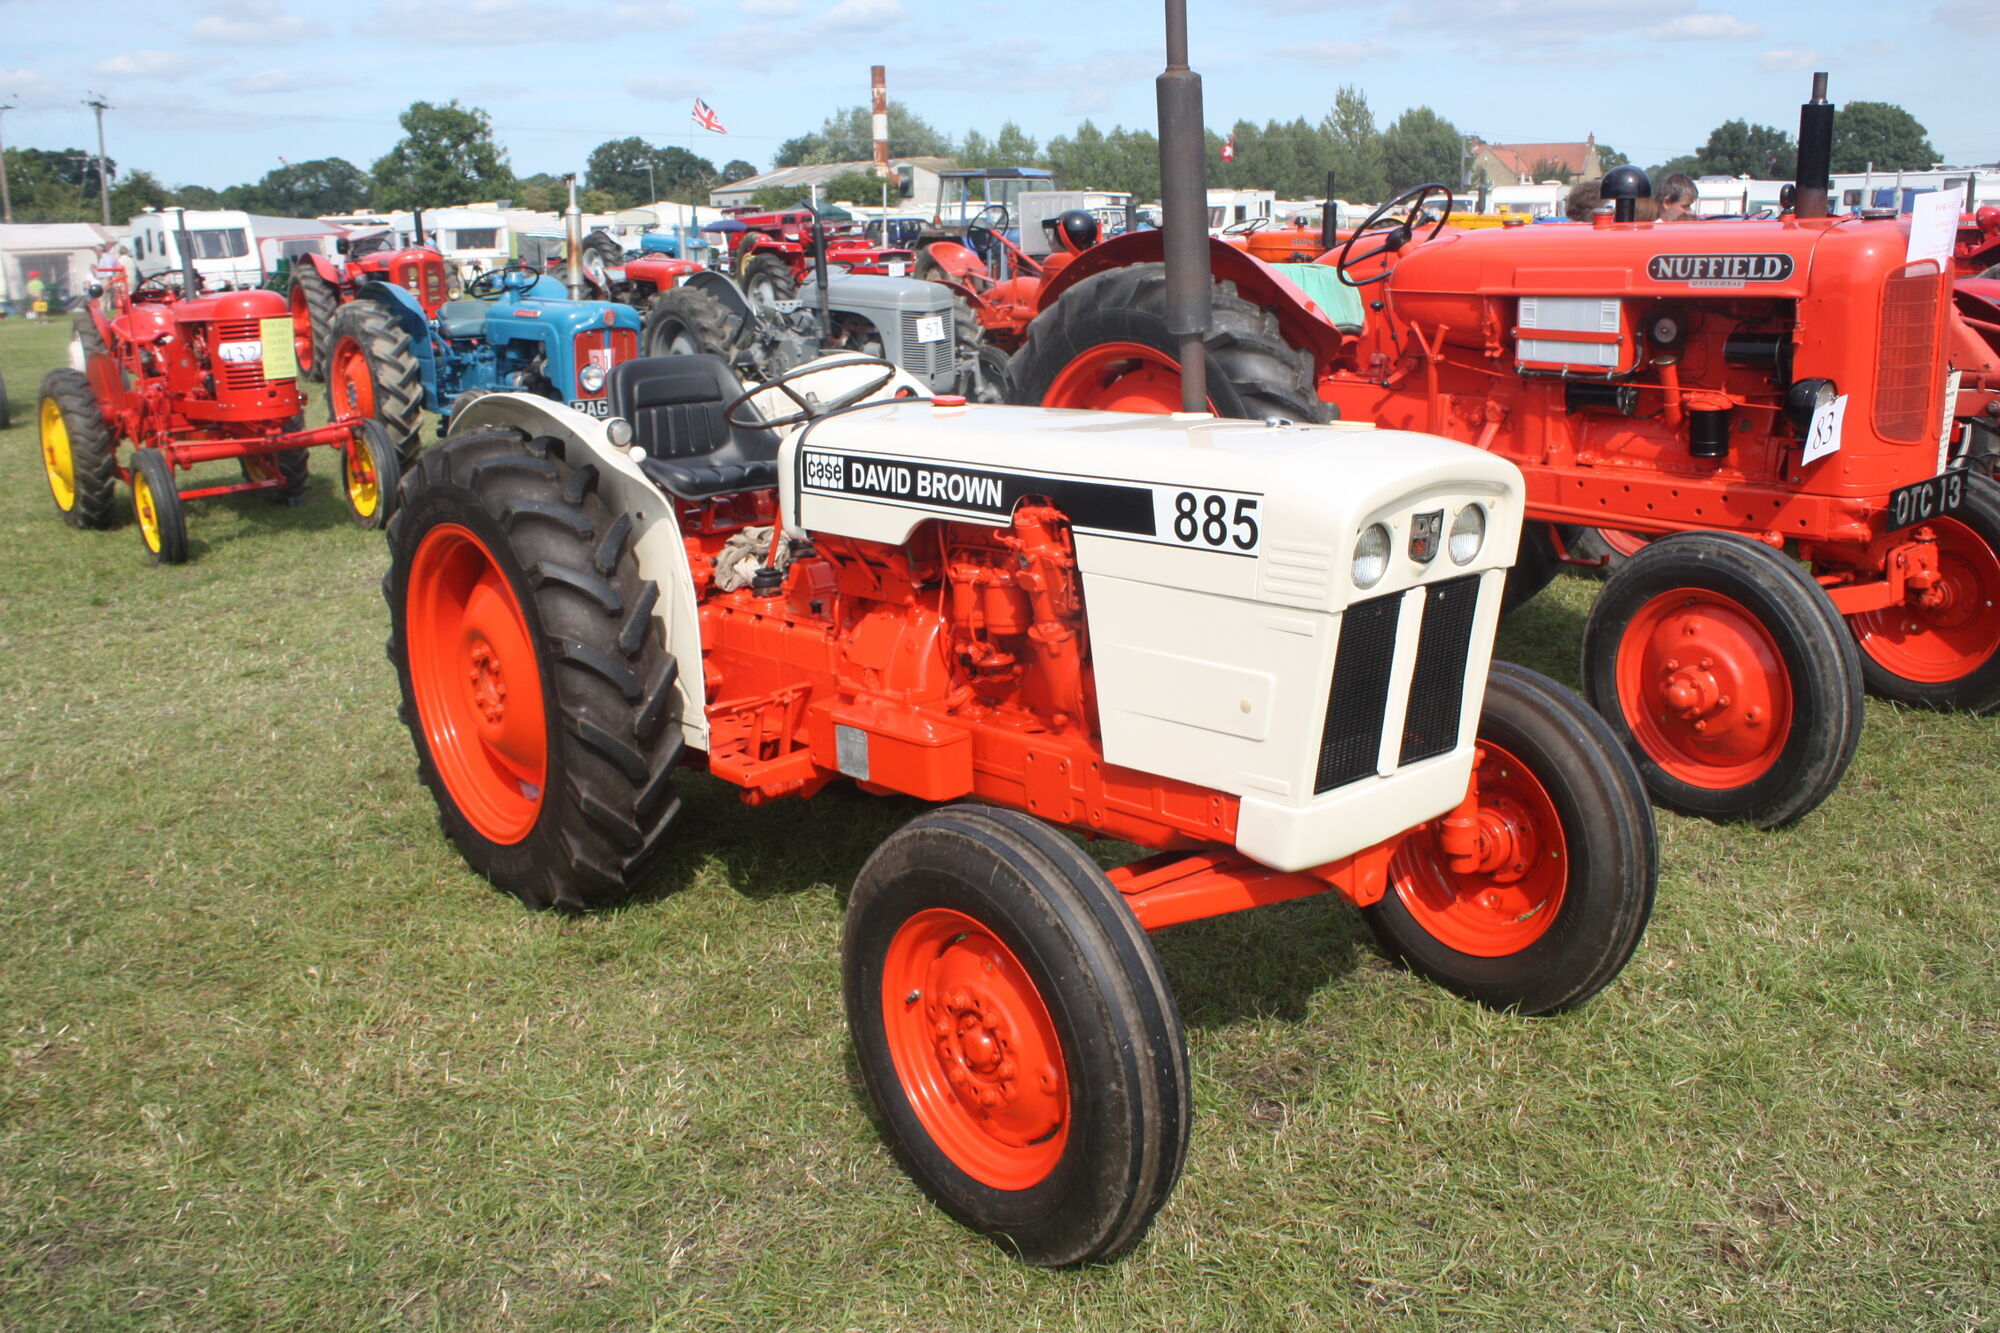 770 Selectamatic The David Brown Tractor Club For All Things DB on